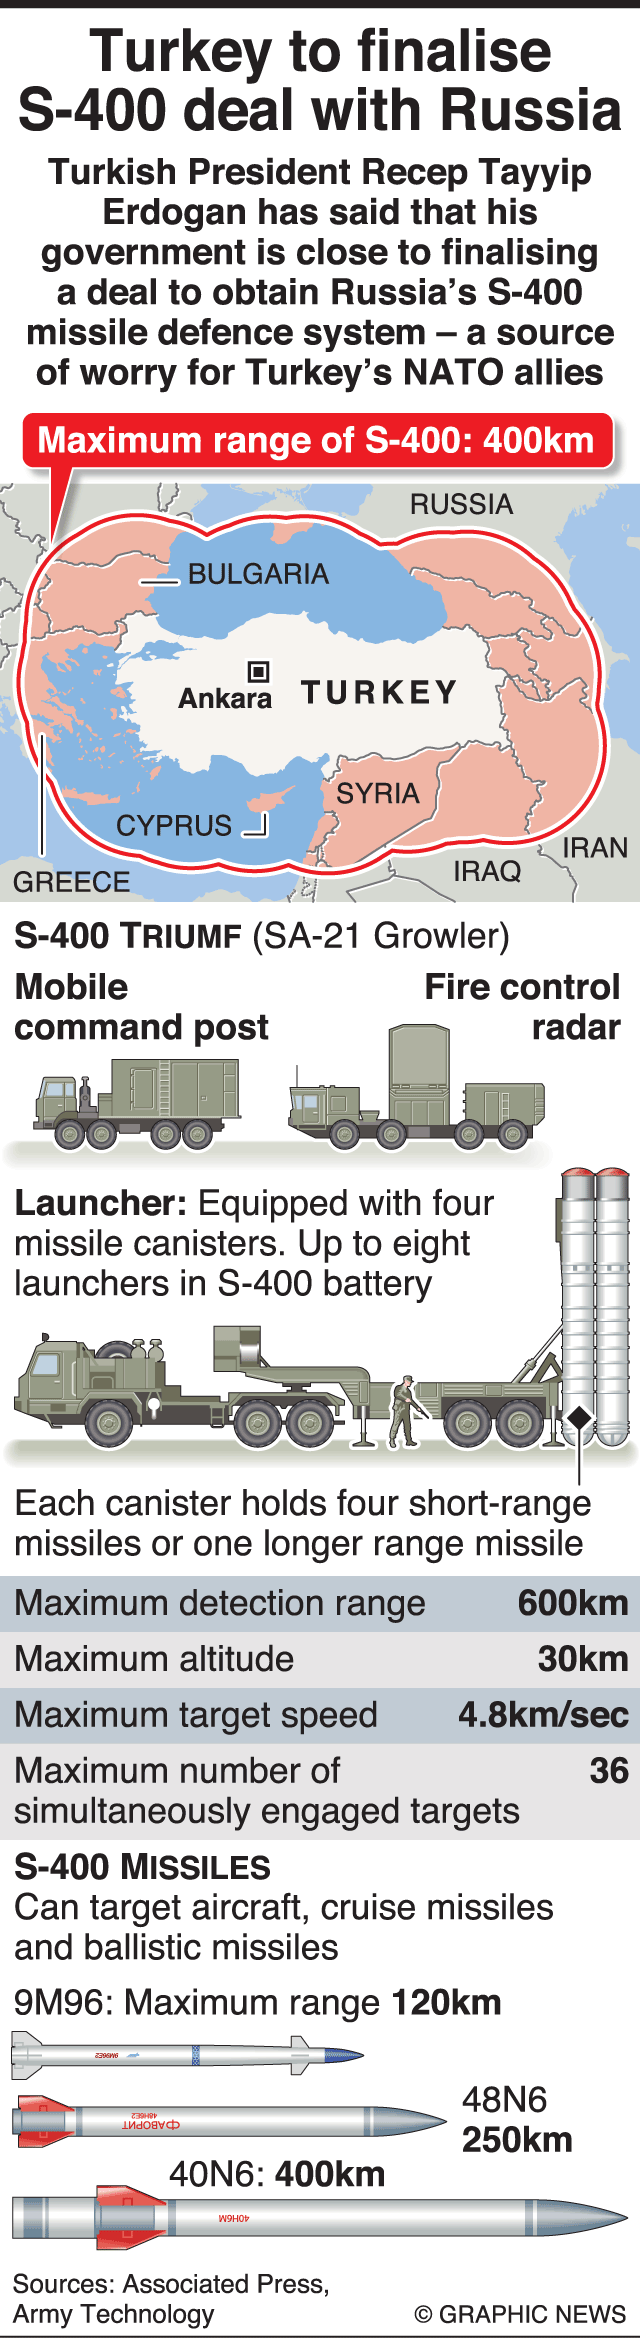 Russian S-400 defense system purchase done deal: Turkey